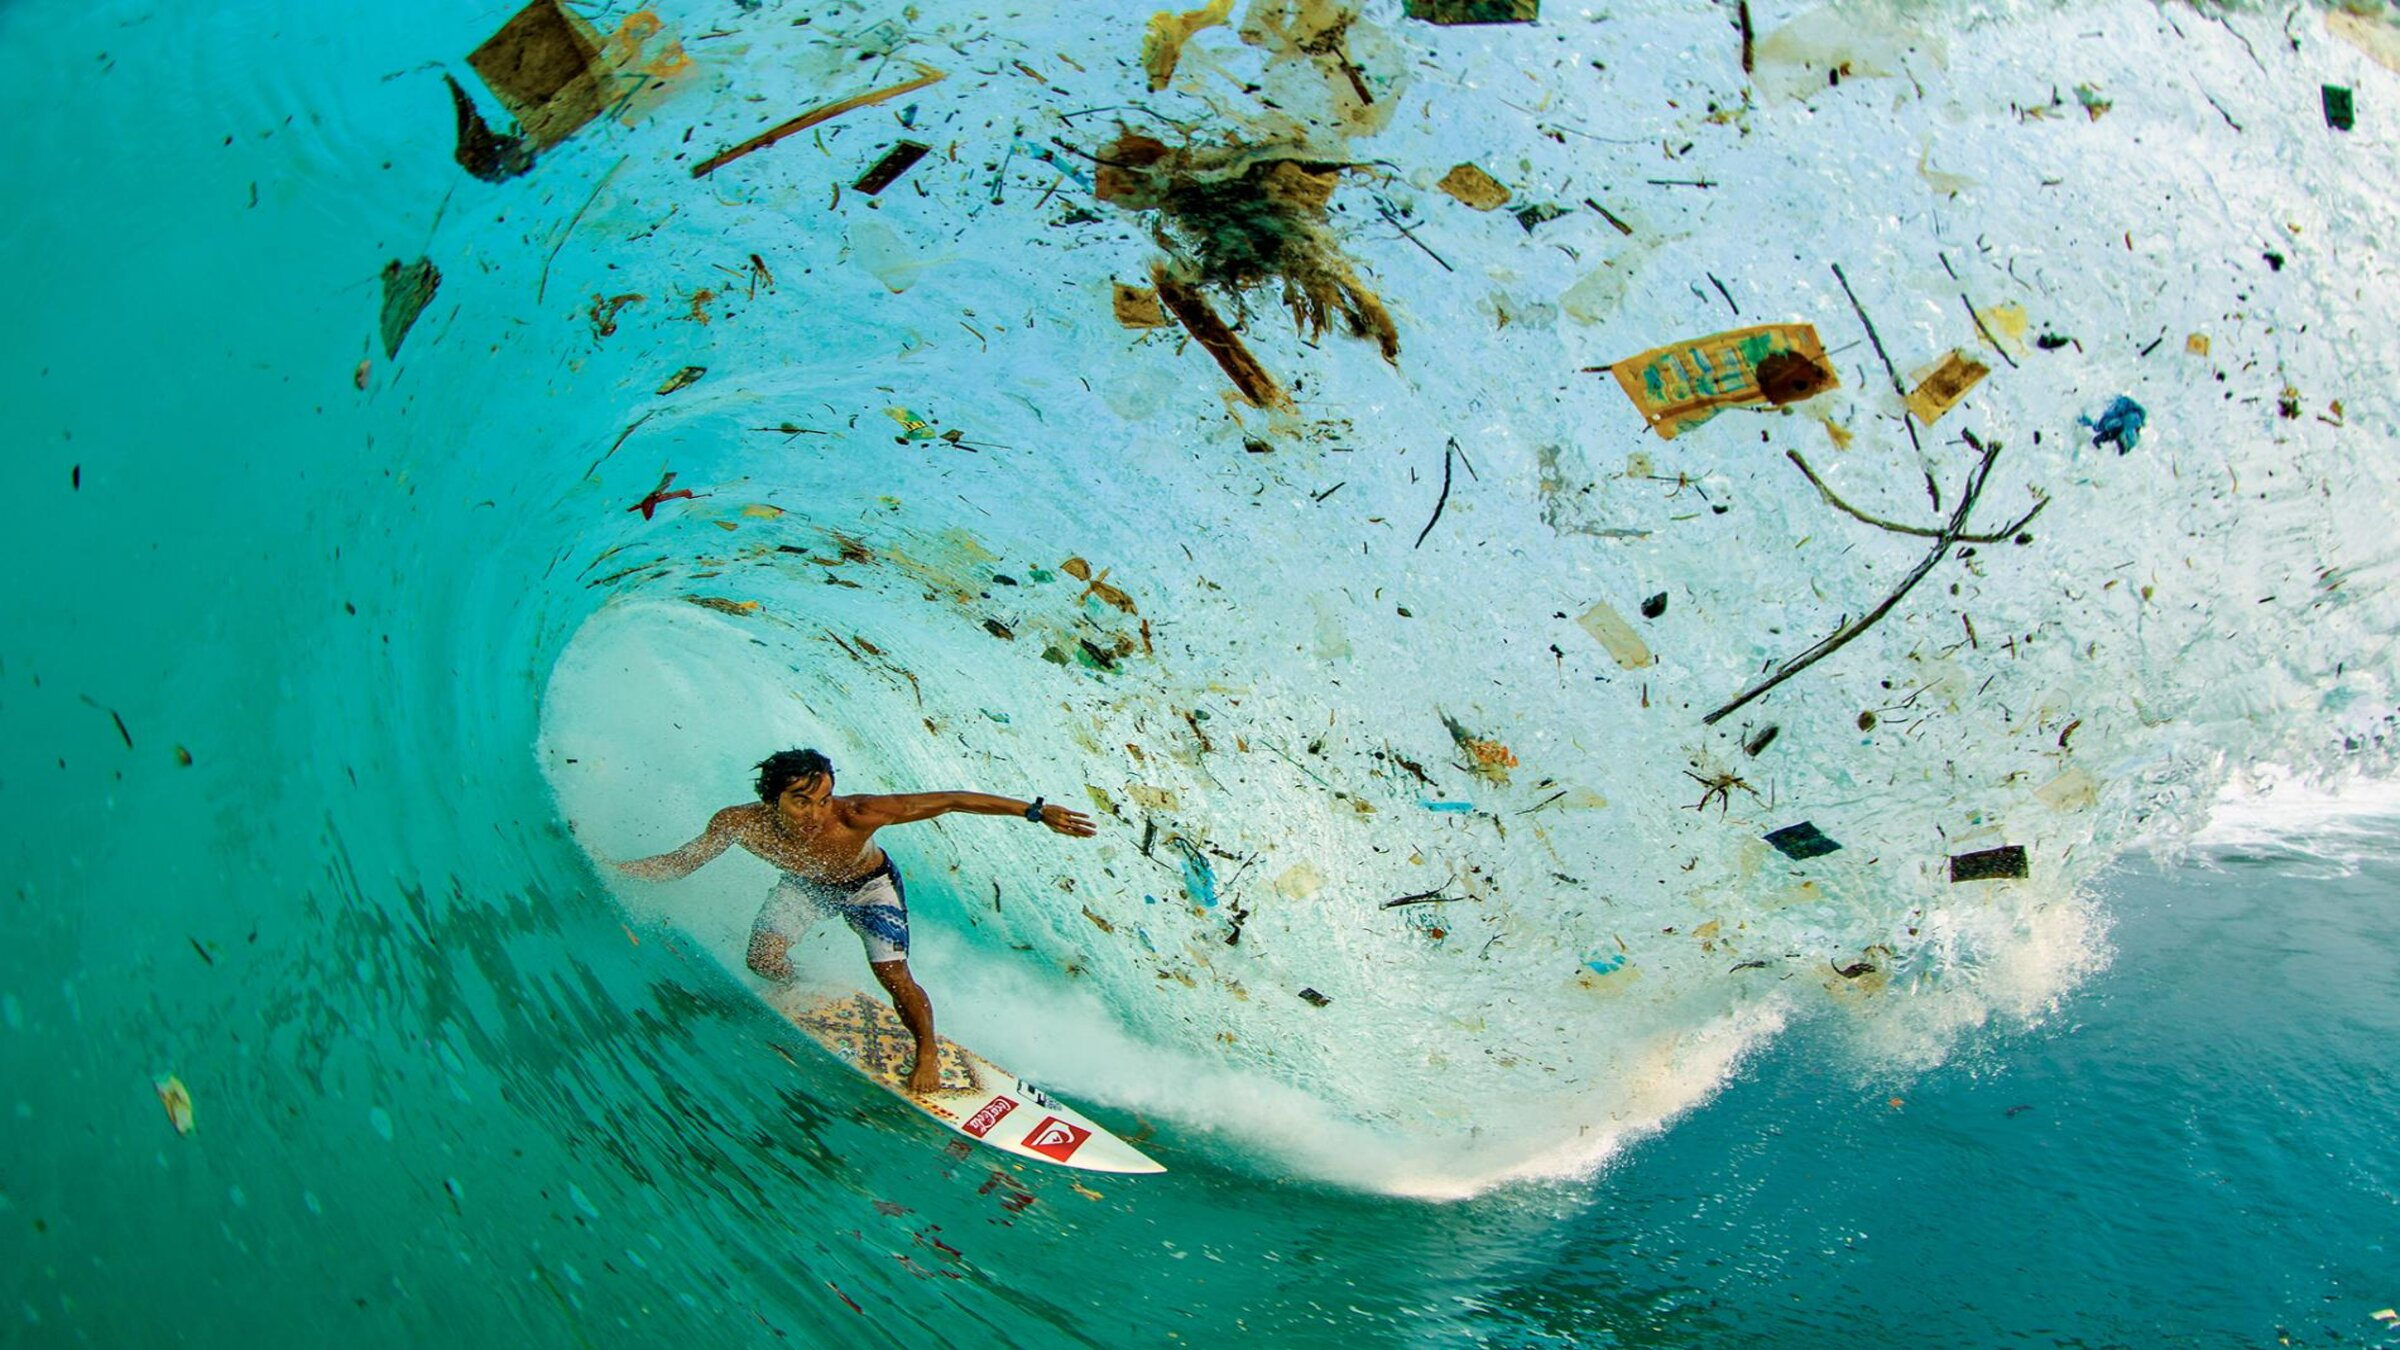 A man surfing in waves with plastic in them